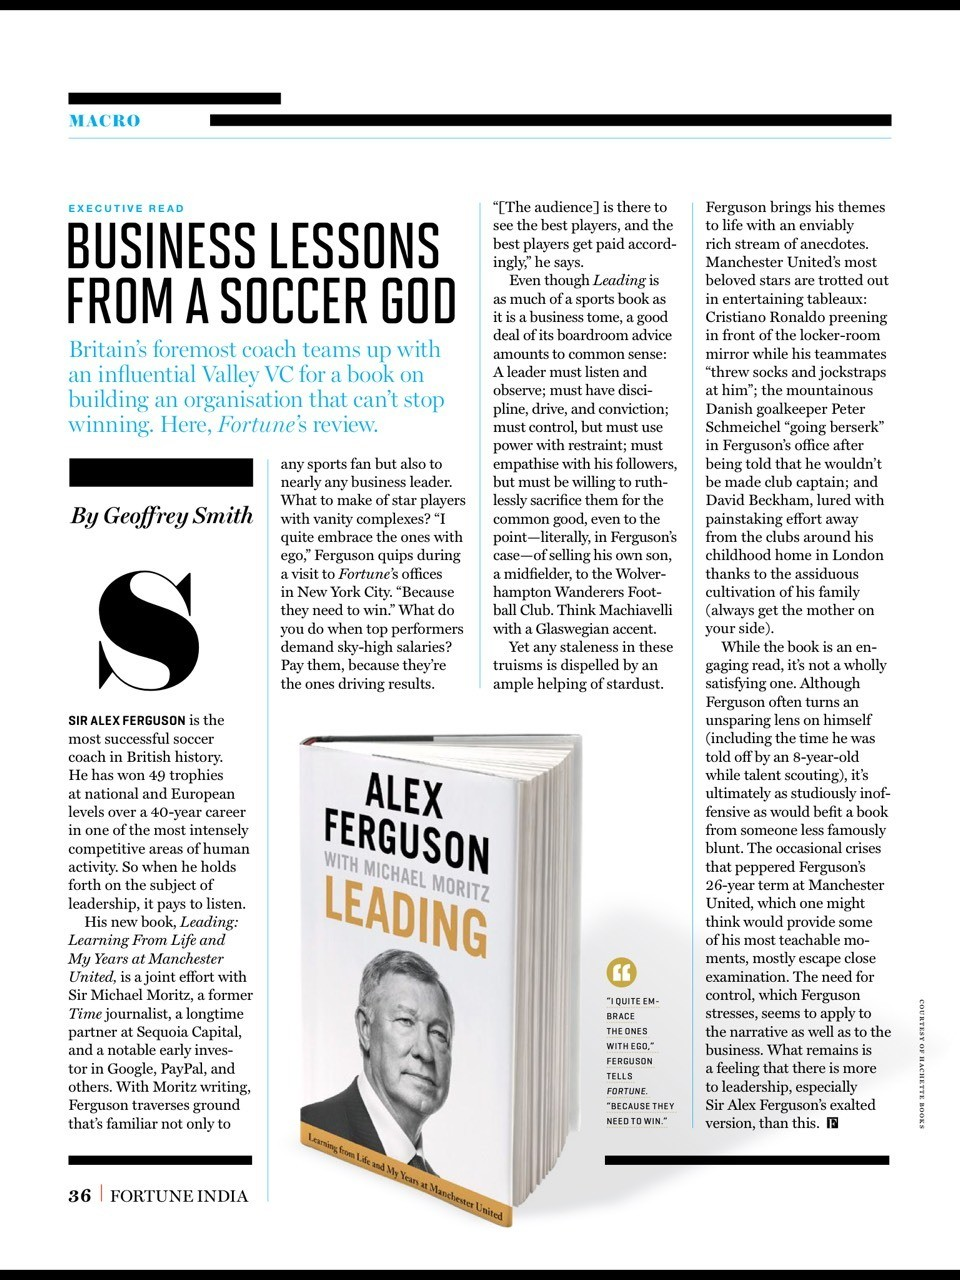 Business lesson from a soccer god